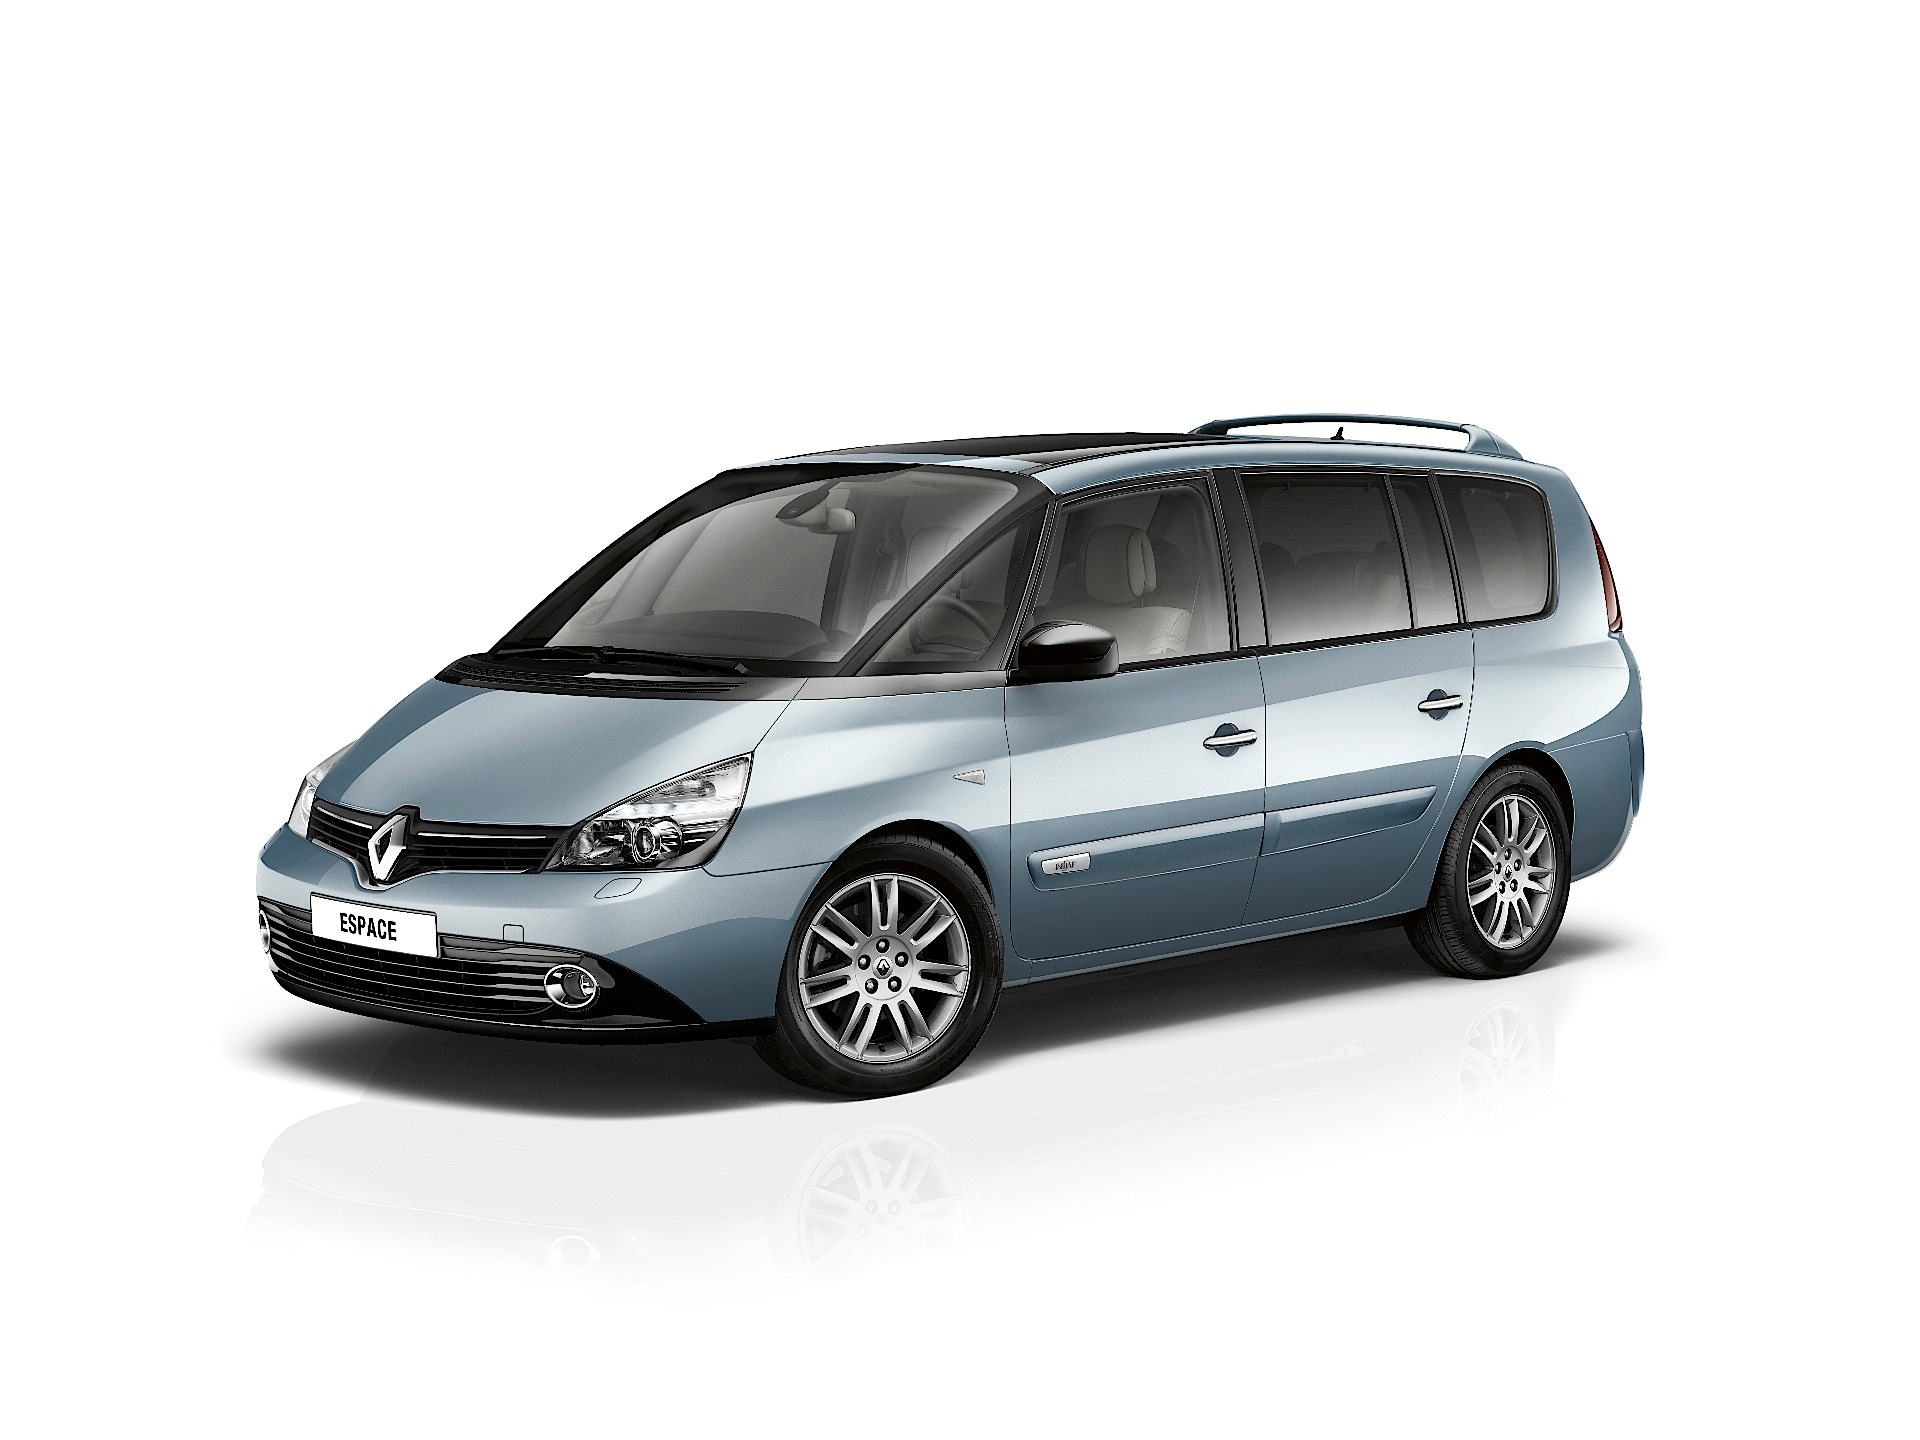 renault espace specs 2006 2007 2008 2009 2010 2011 2012 2013 2014 autoevolution. Black Bedroom Furniture Sets. Home Design Ideas